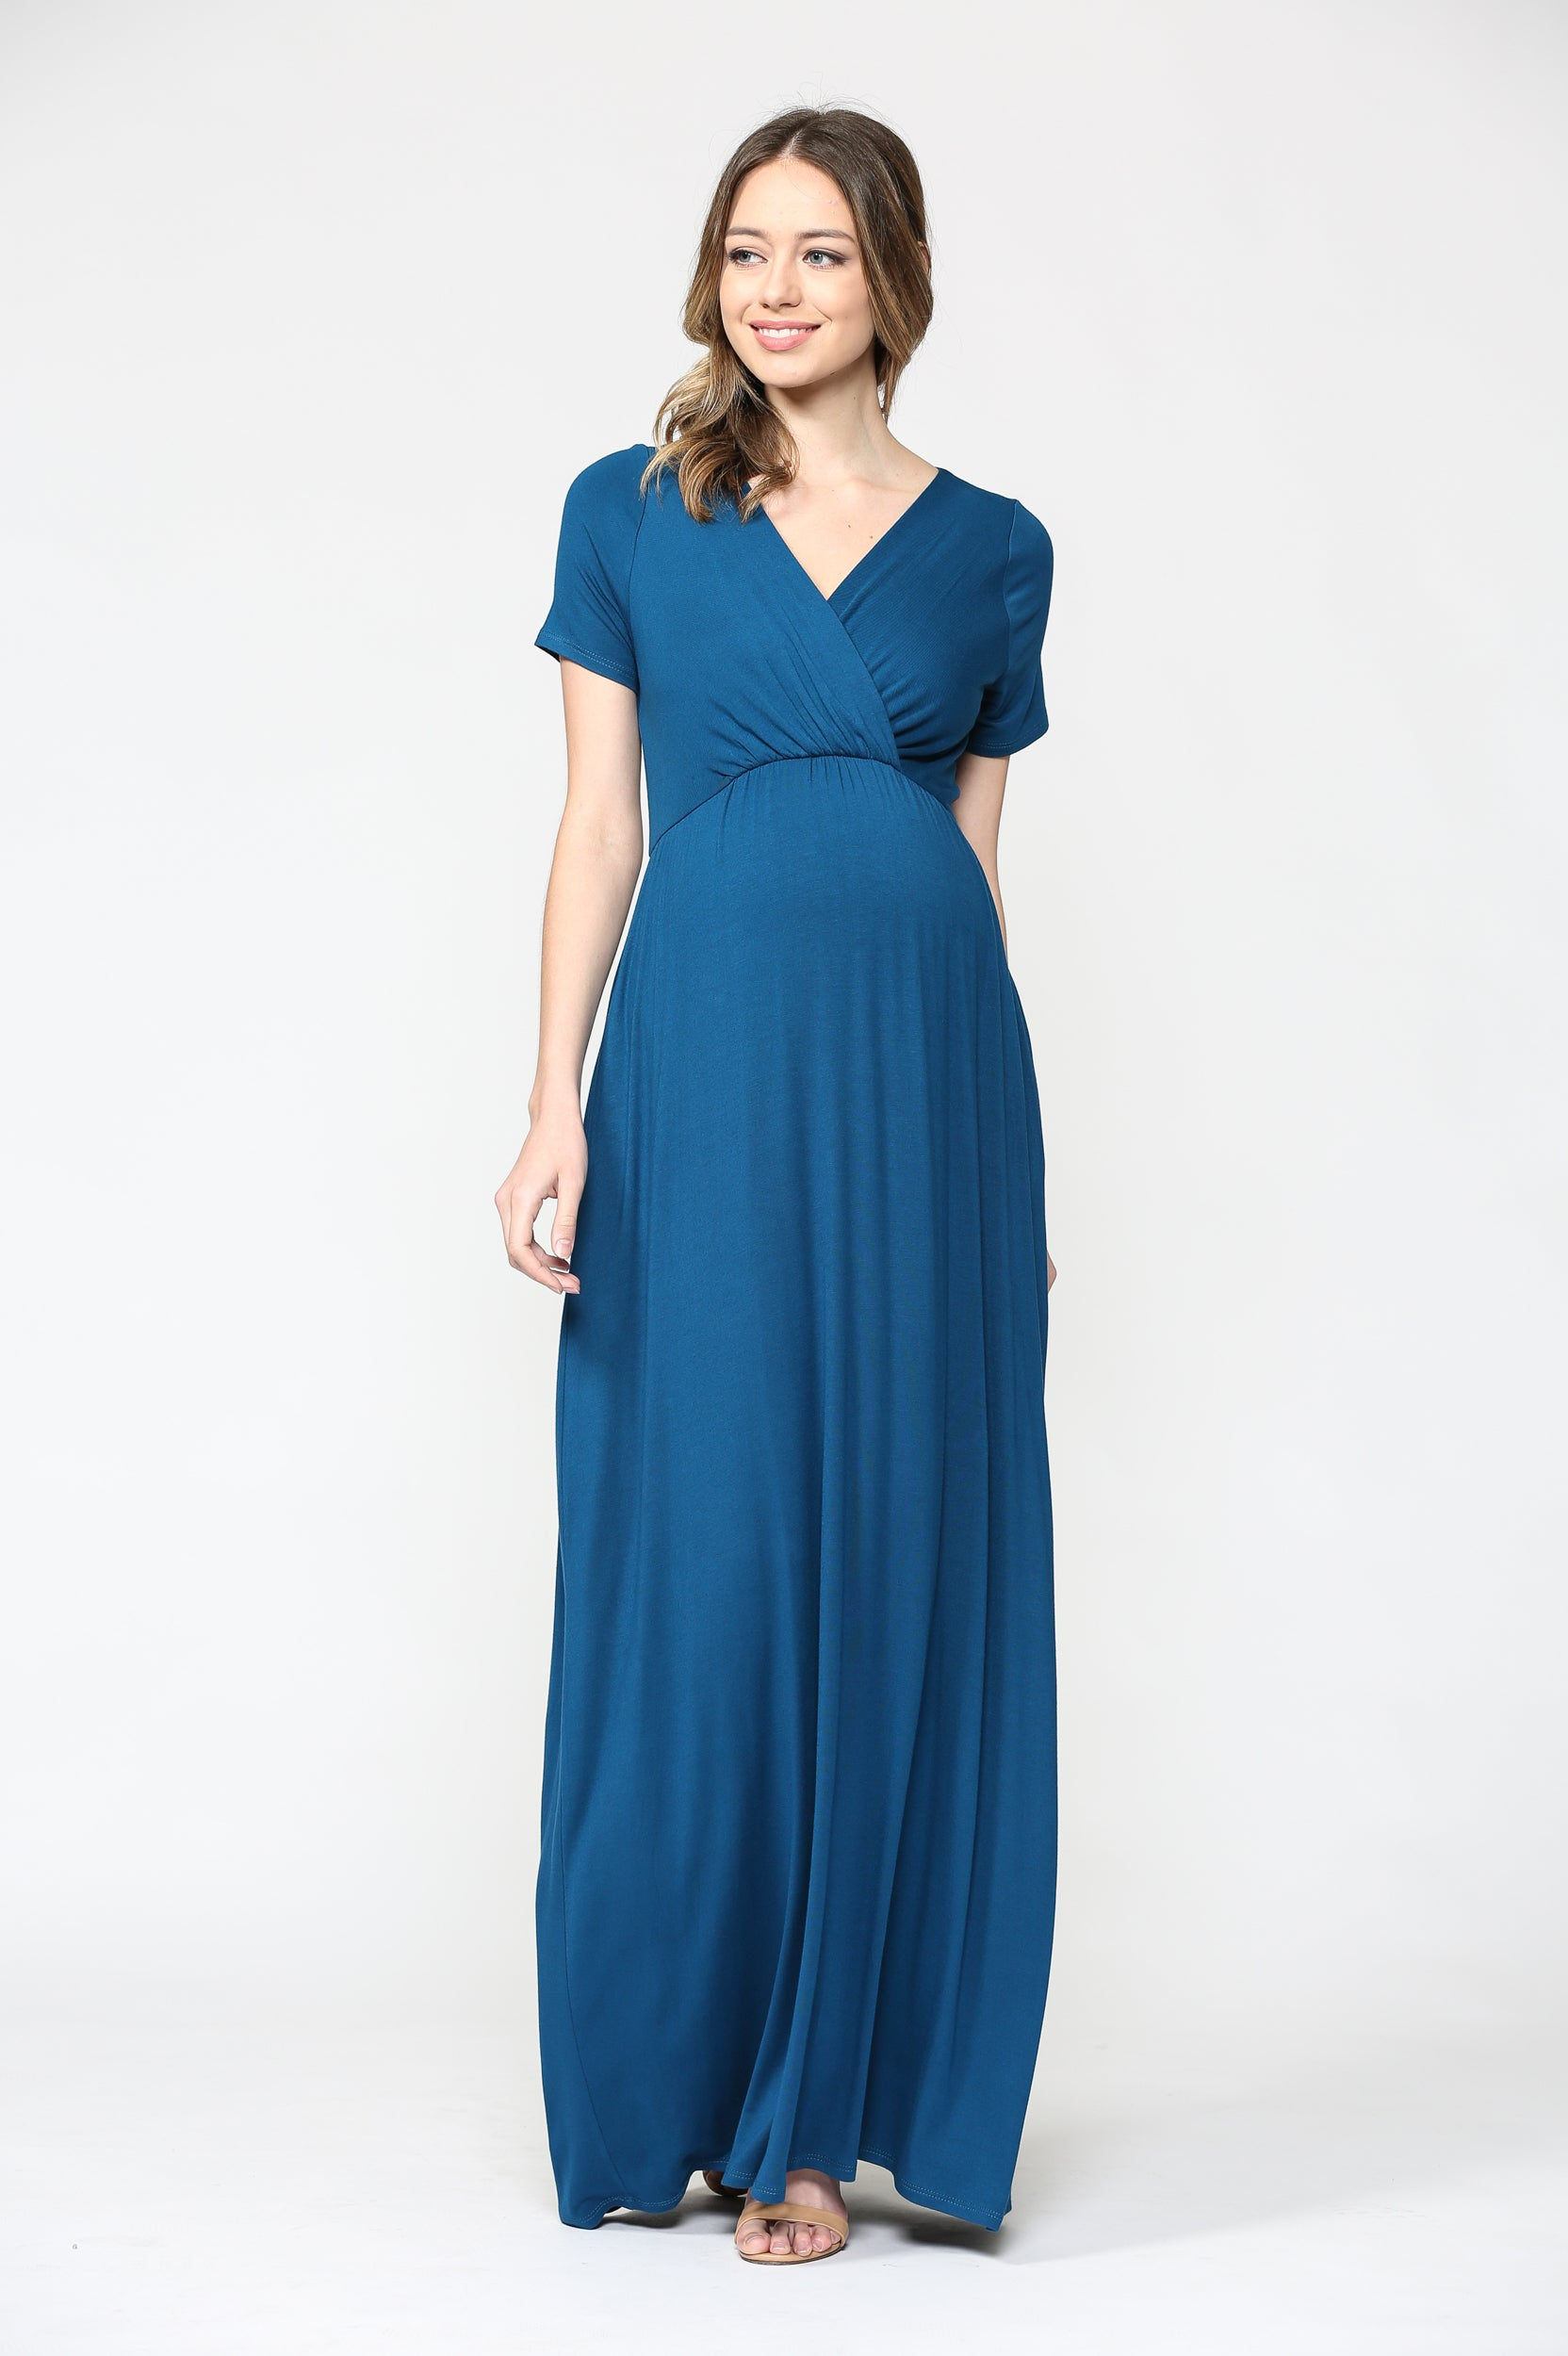 V-neck Short Sleeve Maternity Maxi Dress with Side Pocket